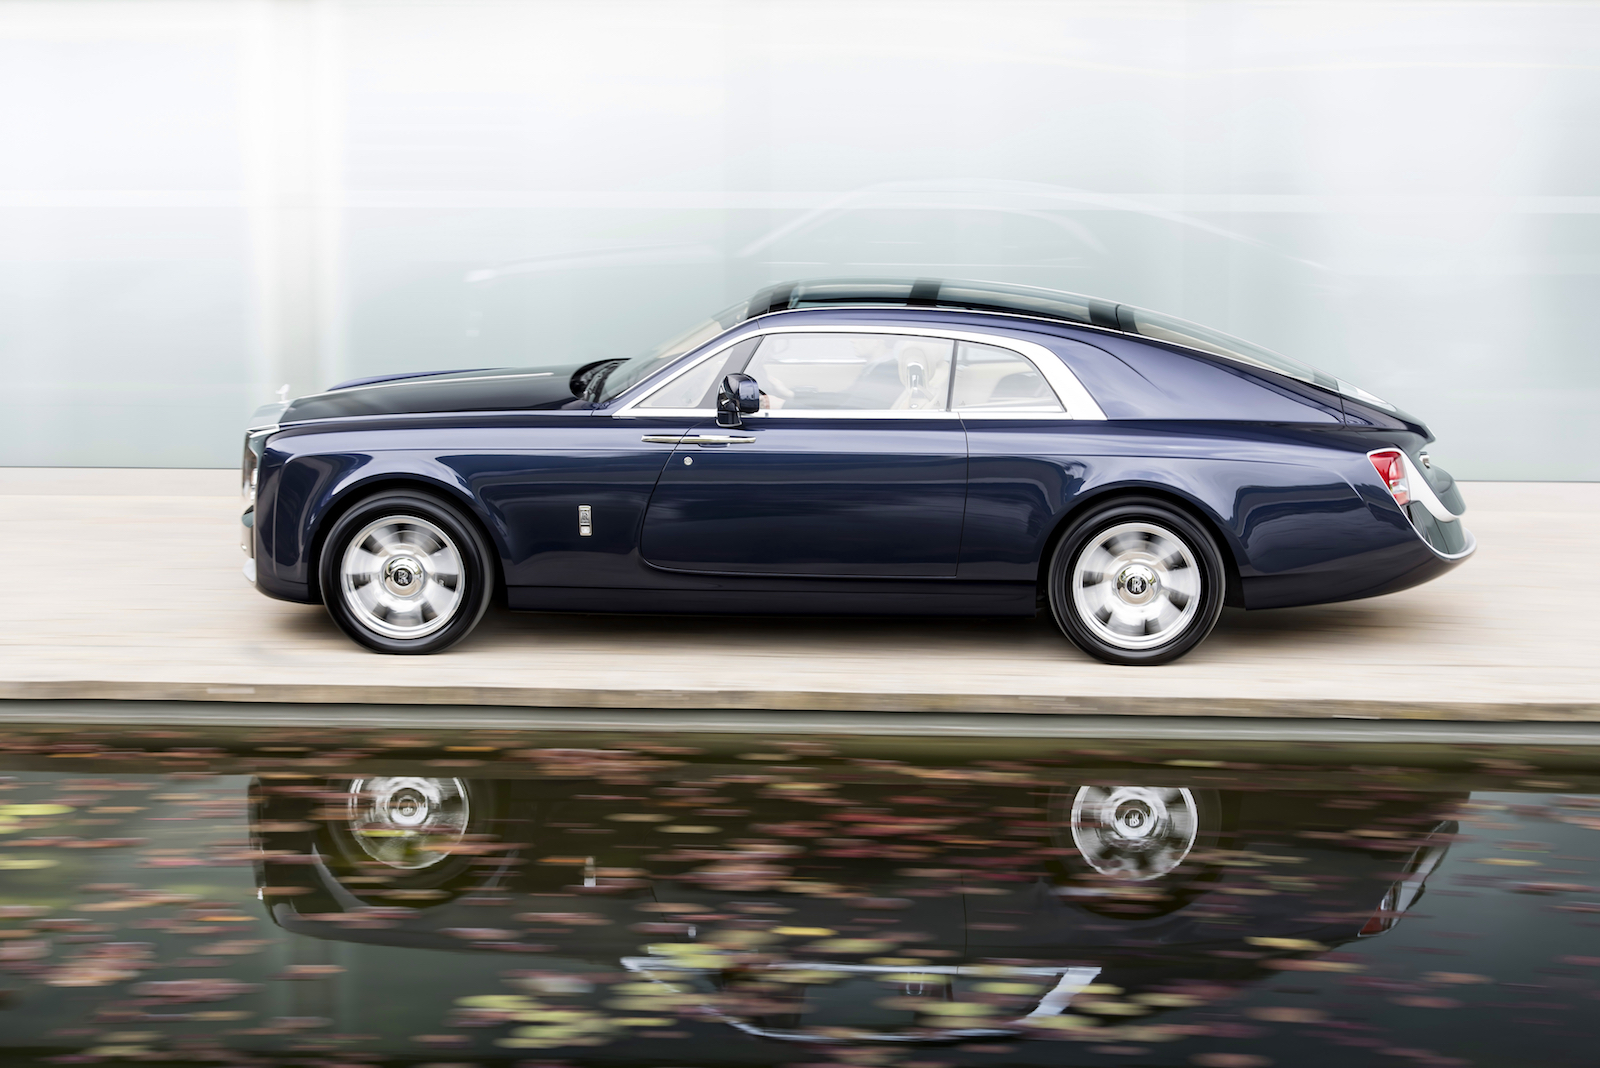 One-Off Rolls Royce Sweptail Is The World's Most Expensive New Car